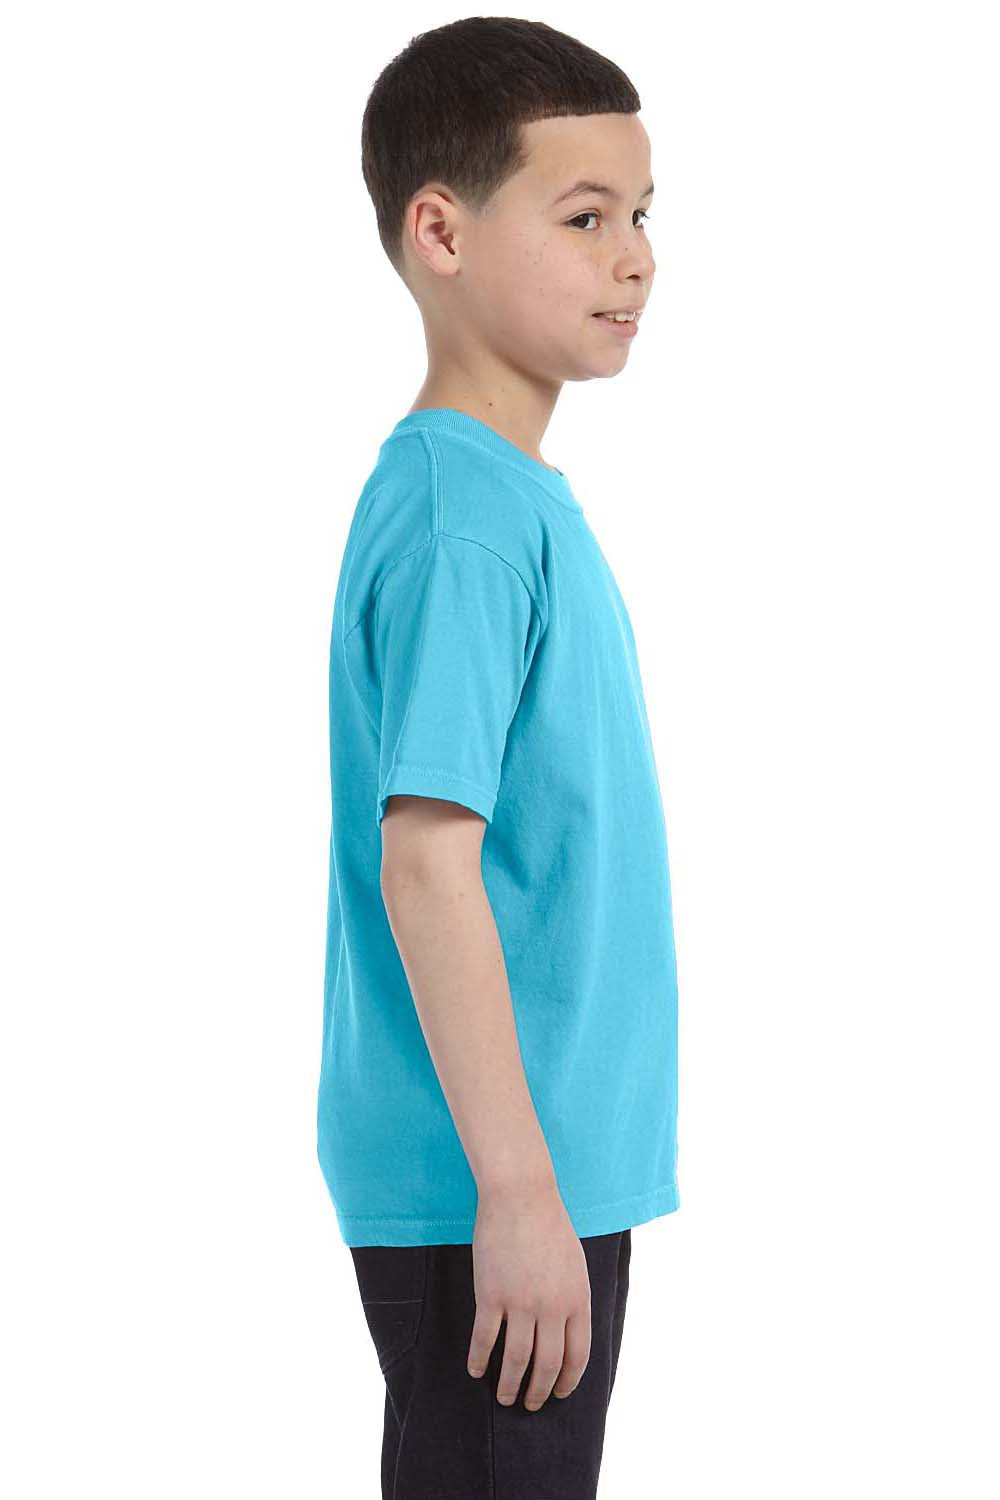 Comfort Colors C9018 Youth Short Sleeve Crewneck T-Shirt Lagoon Blue Side